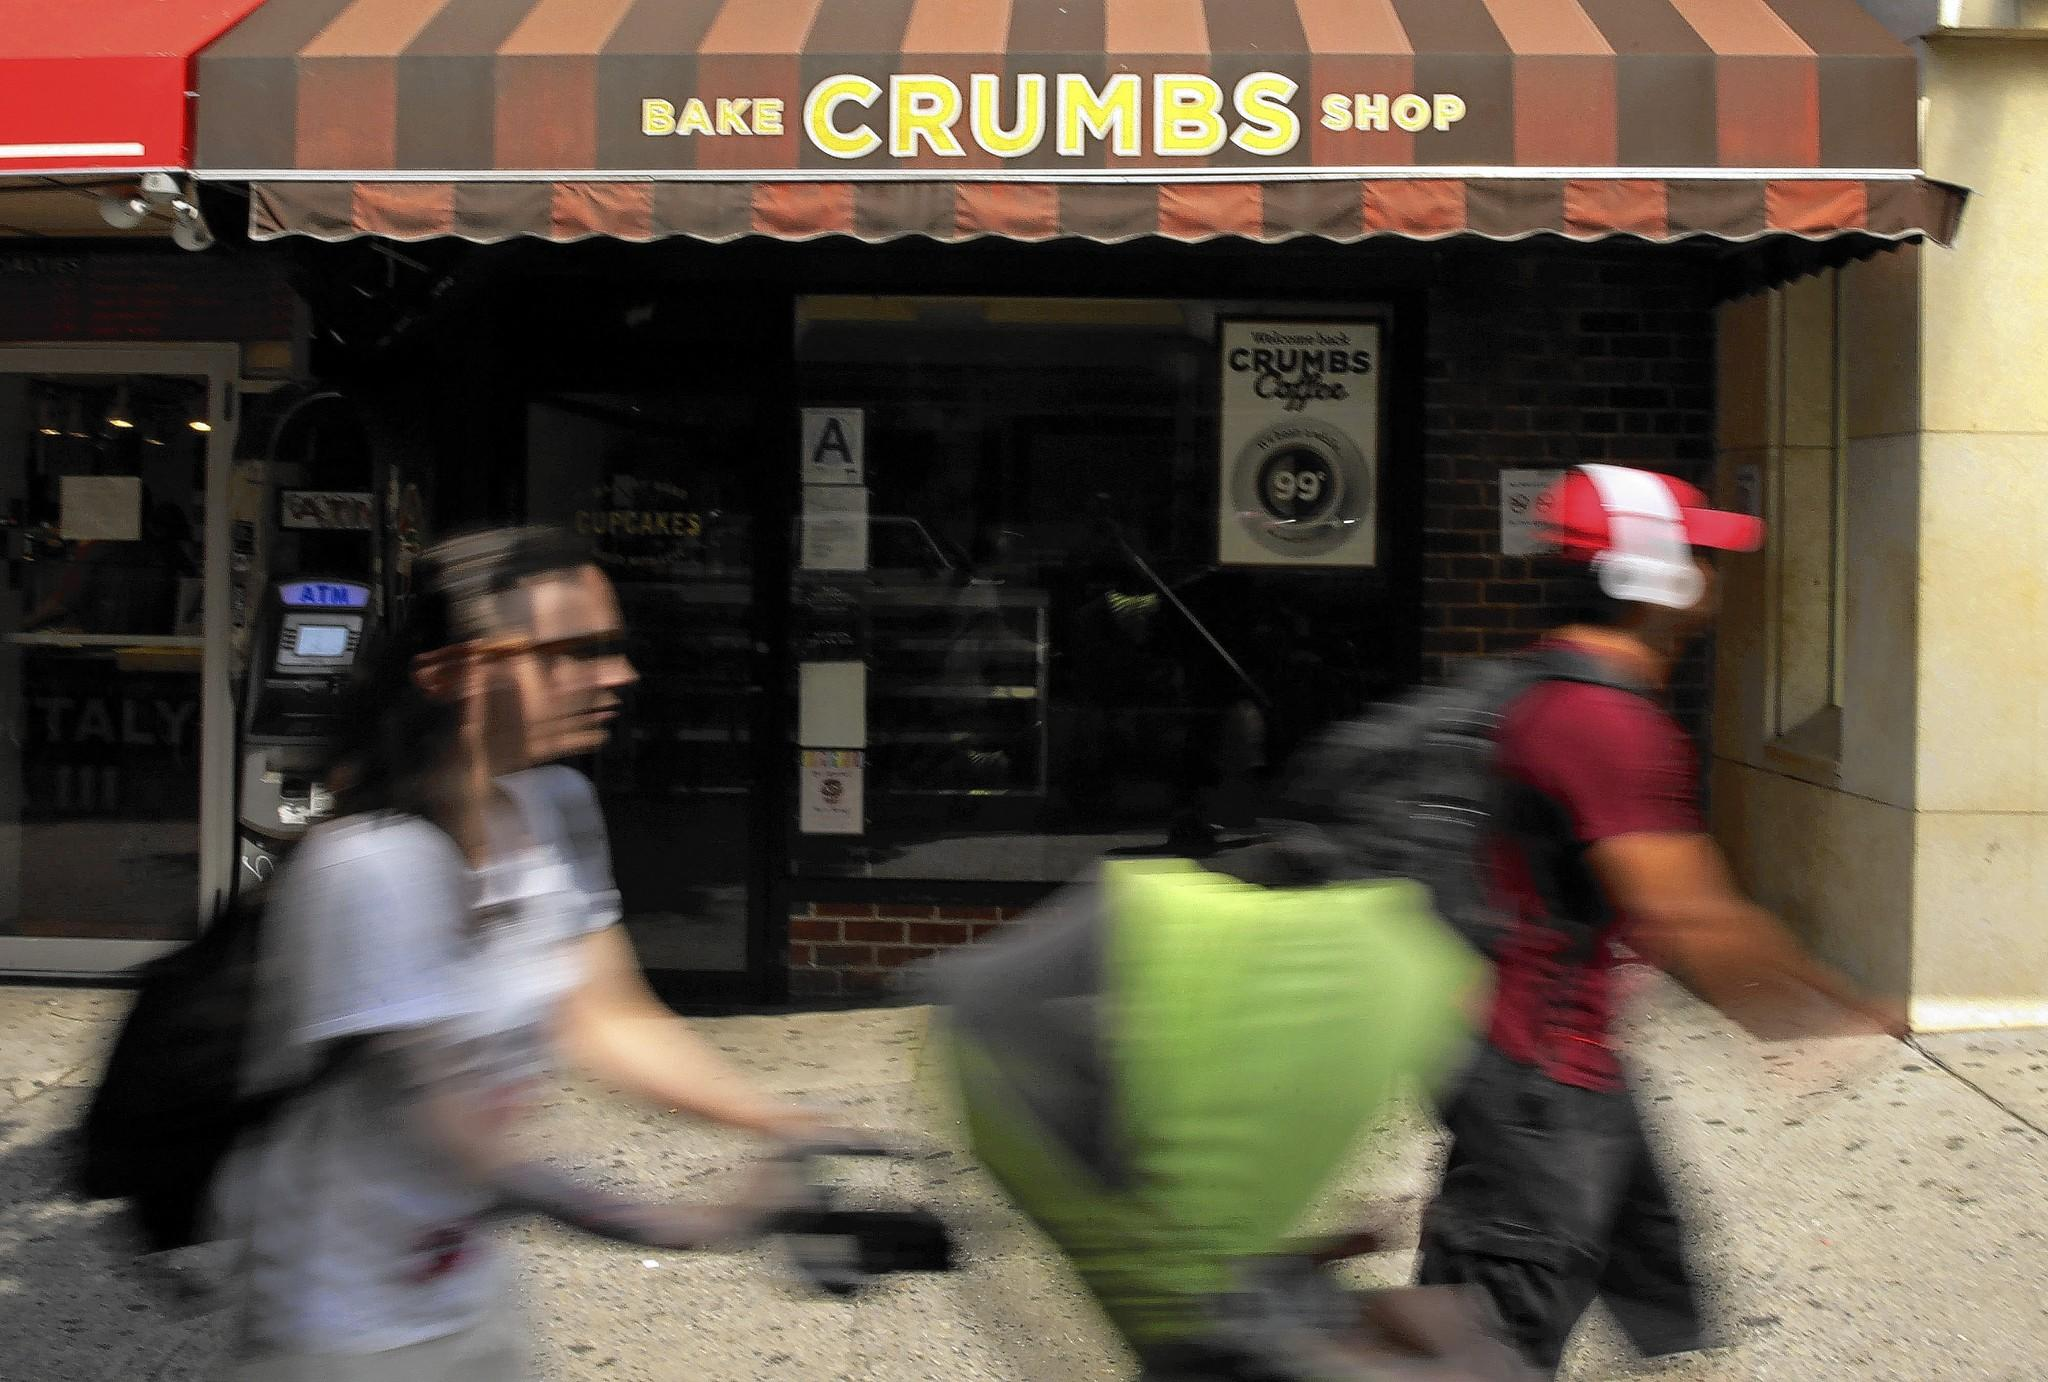 A Crumbs Bake Shop sits empty in New York after the chain closed all its stores this week. Many shops are trying to profit off the U.S. cupcake trend, but demand has waned, a research firm said.